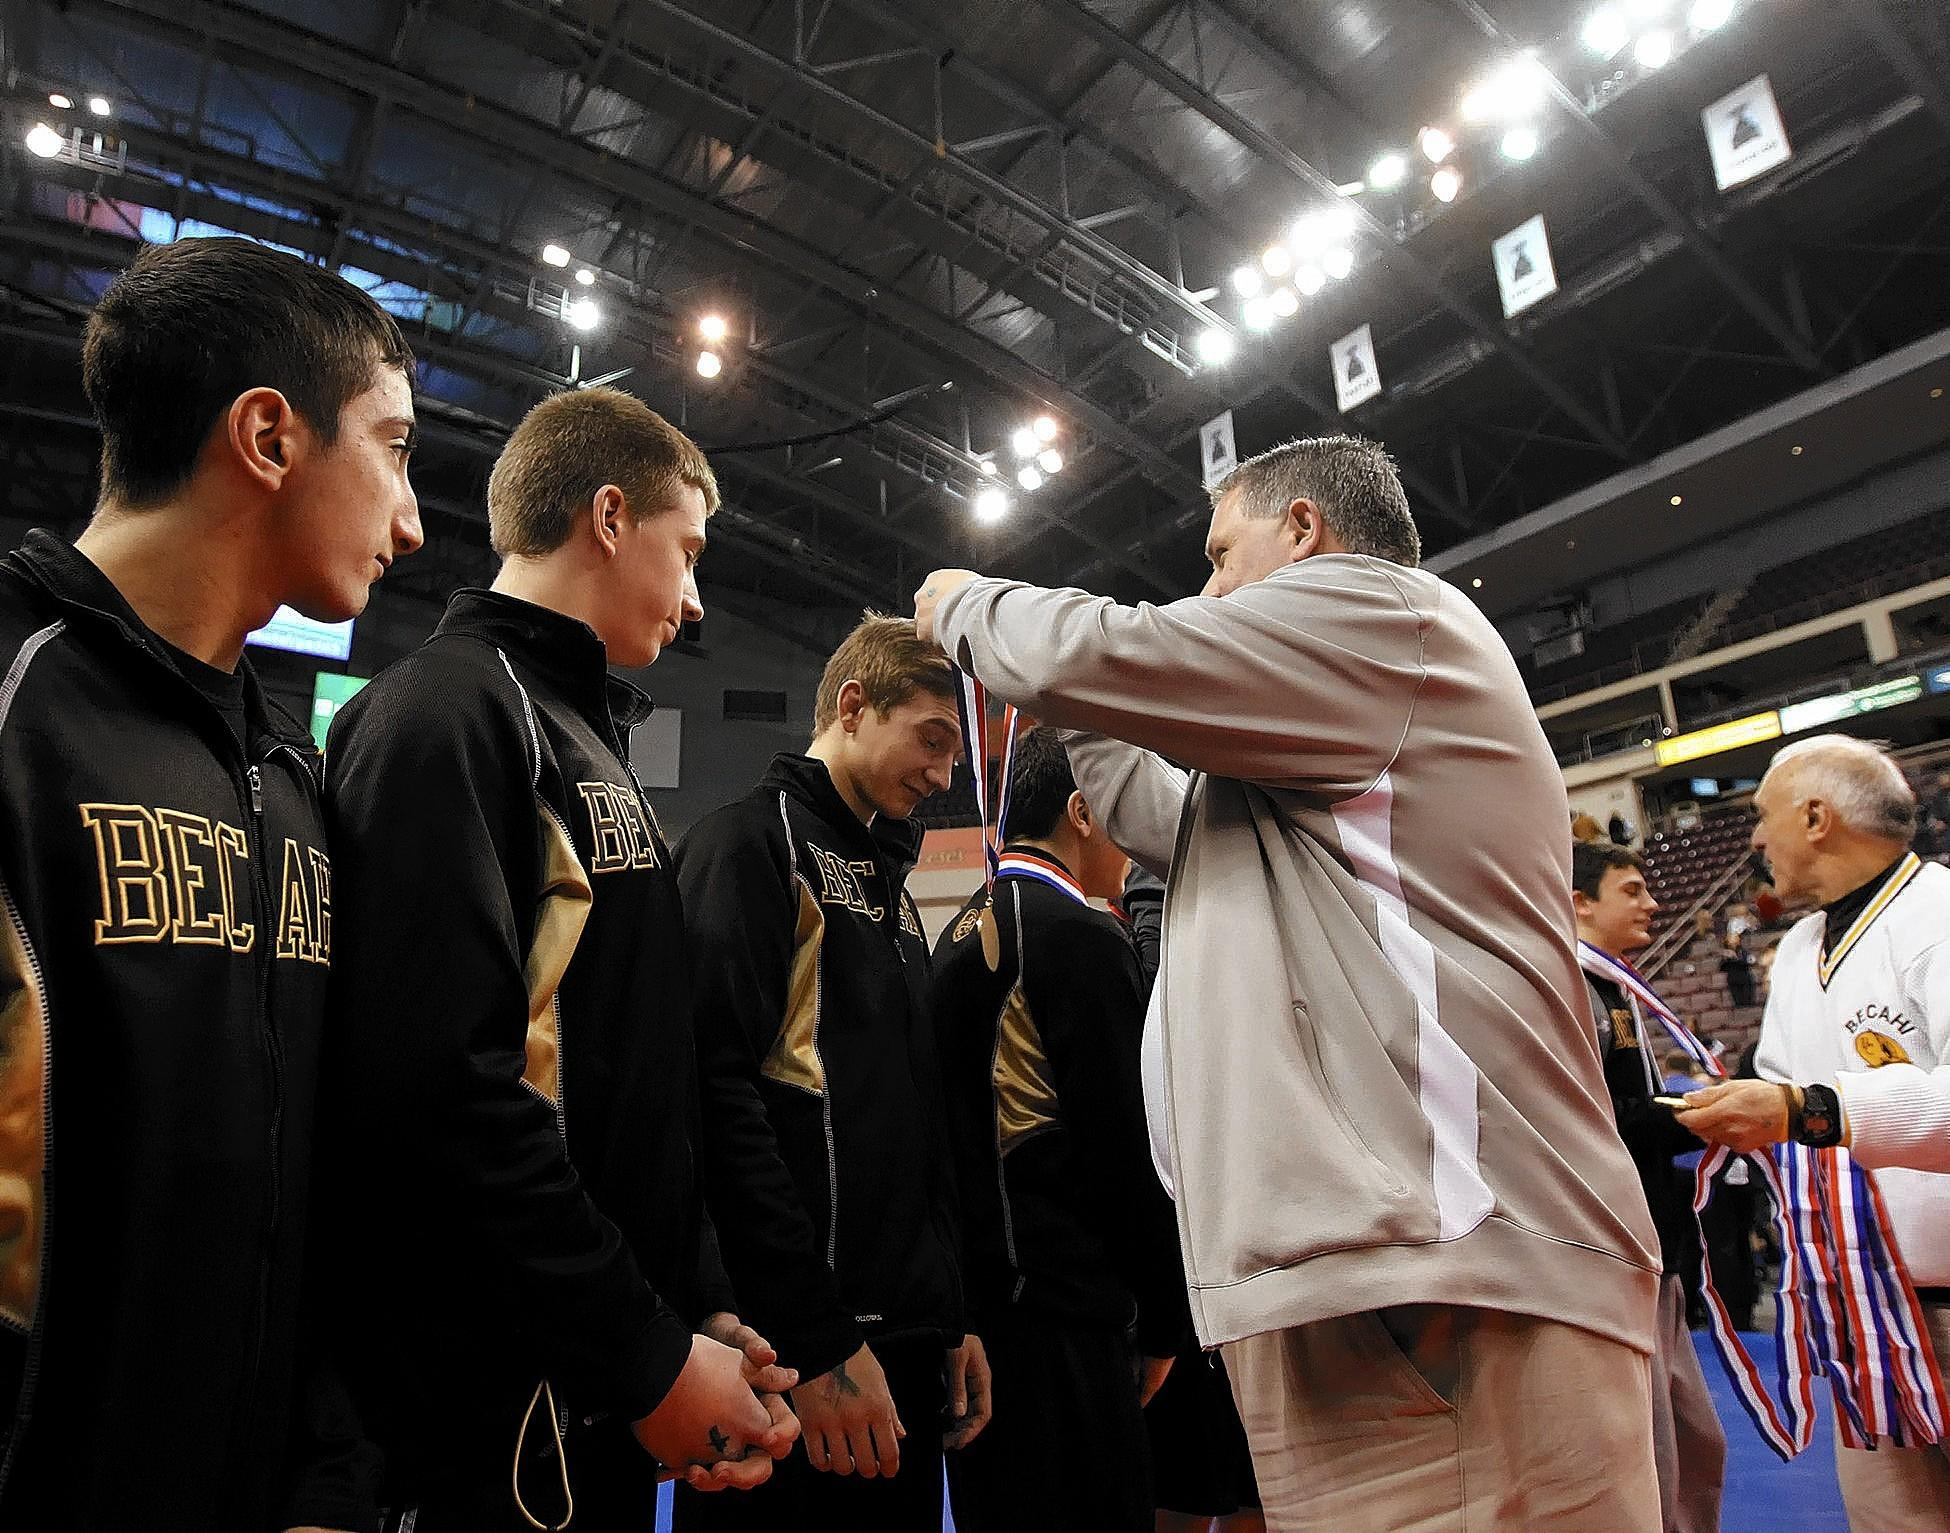 Bethlehem Catholic High School principal John Petruzzelli hands out gold medals to the team after the Golden Hawks beat Reynolds during the PIAA Class 2A Team Wrestling Championships on Saturday at the Giant Center in Hershey.